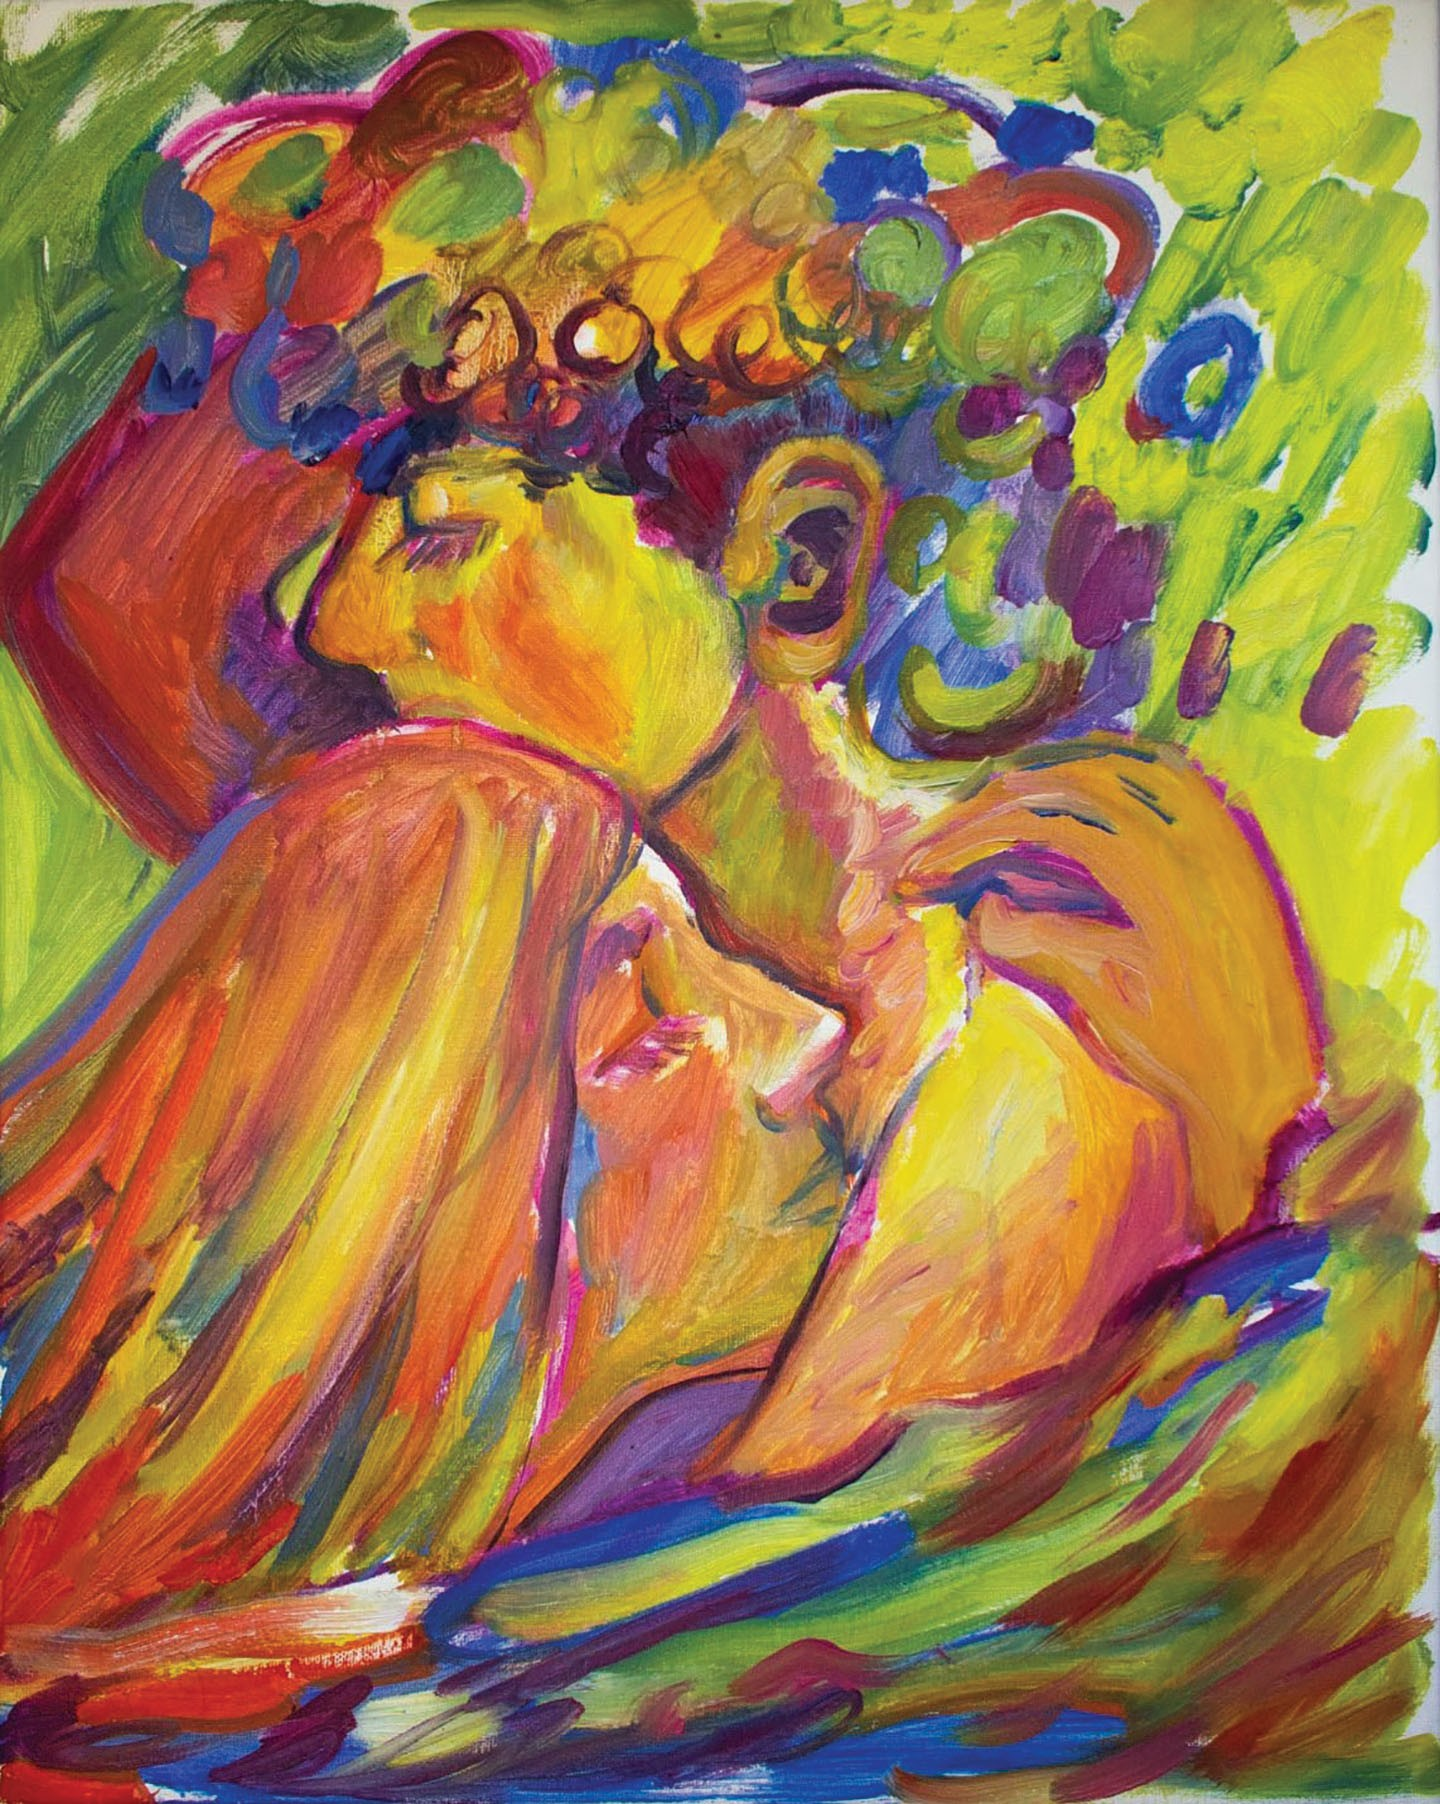 Oil painting of a couple embracing, and drifting off to sleep, enrobed in warm, yellow-green hues.